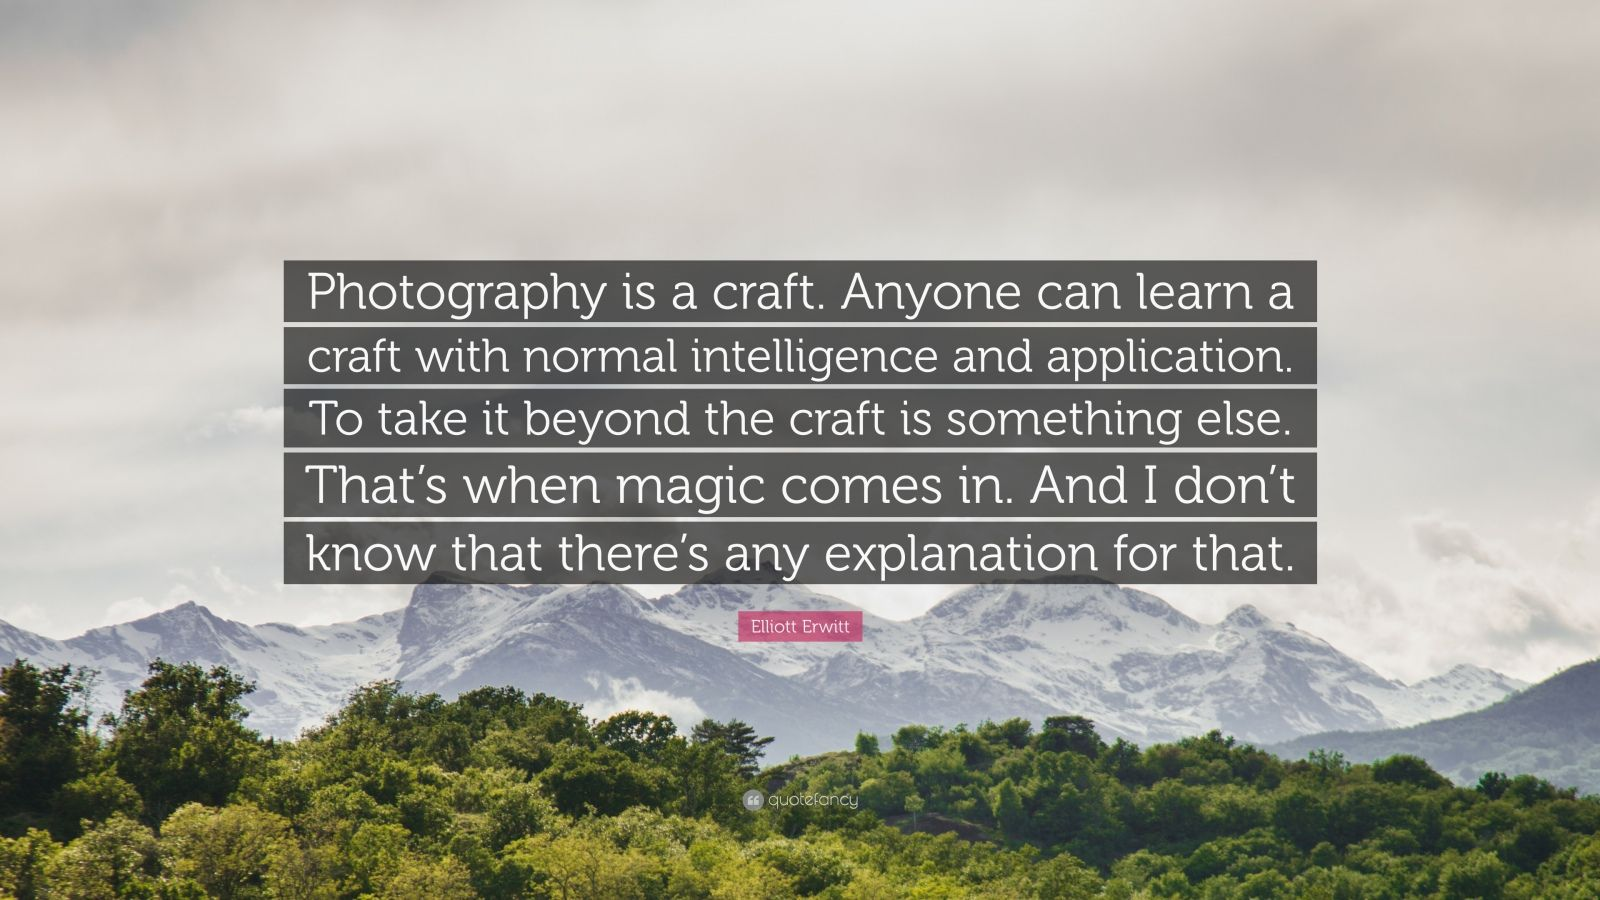 """Elliott Erwitt Quote: """"Photography is a craft. Anyone can learn a craft with normal intelligence and application. To take it beyond the craft is something else. That's when magic comes in. And I don't know that there's any explanation for that."""""""